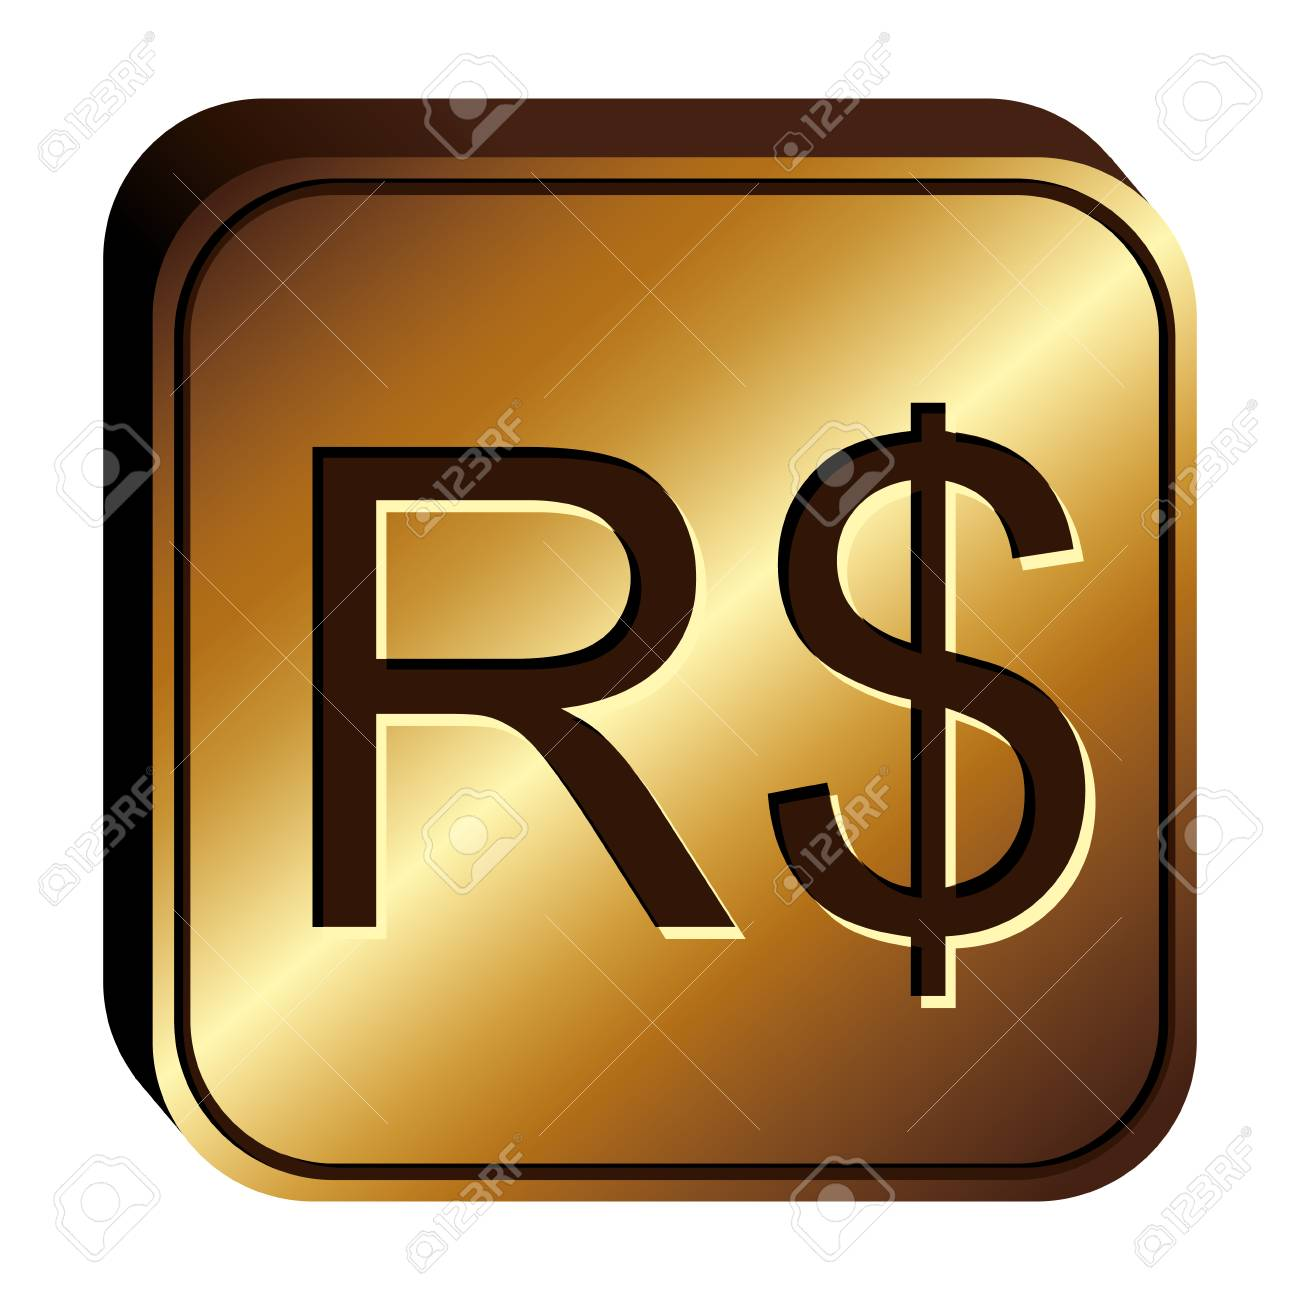 Real Brazil Currency Symbol Icon Image Vector Illustration Royalty